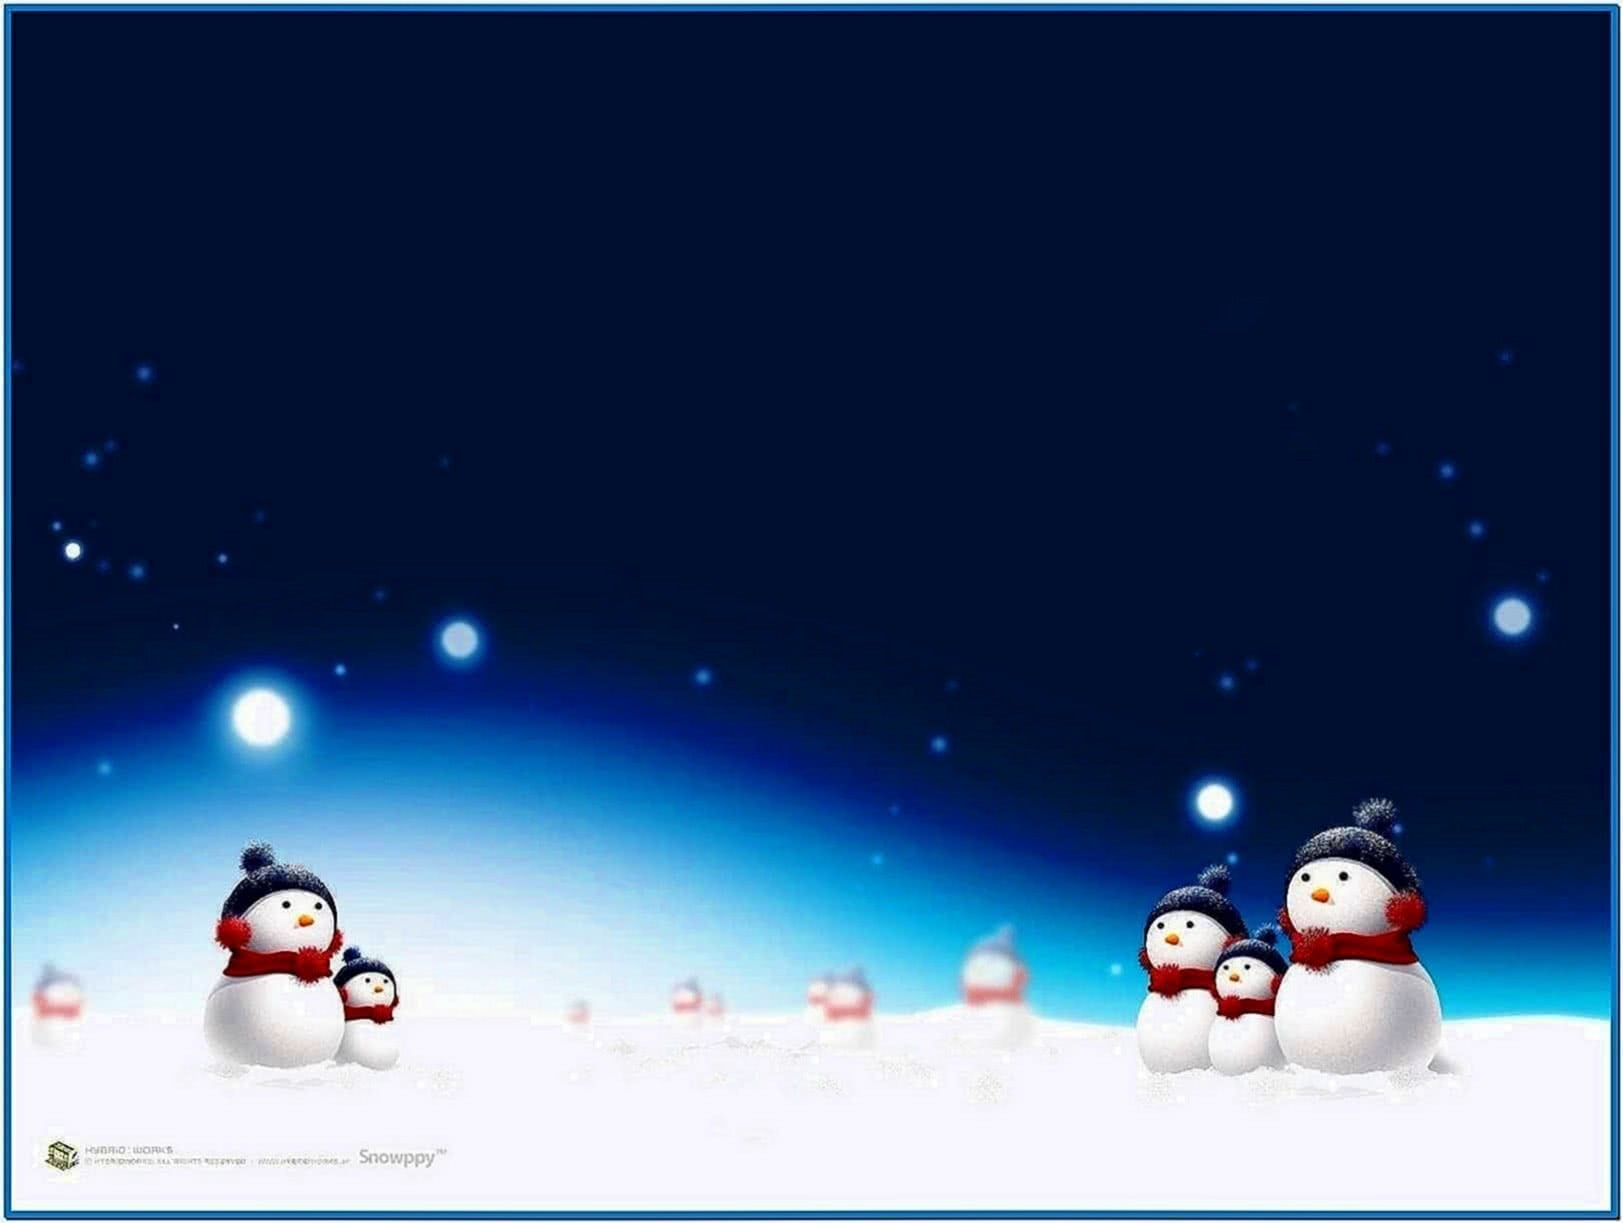 3D Animated Christmas Screensavers and Wallpaper